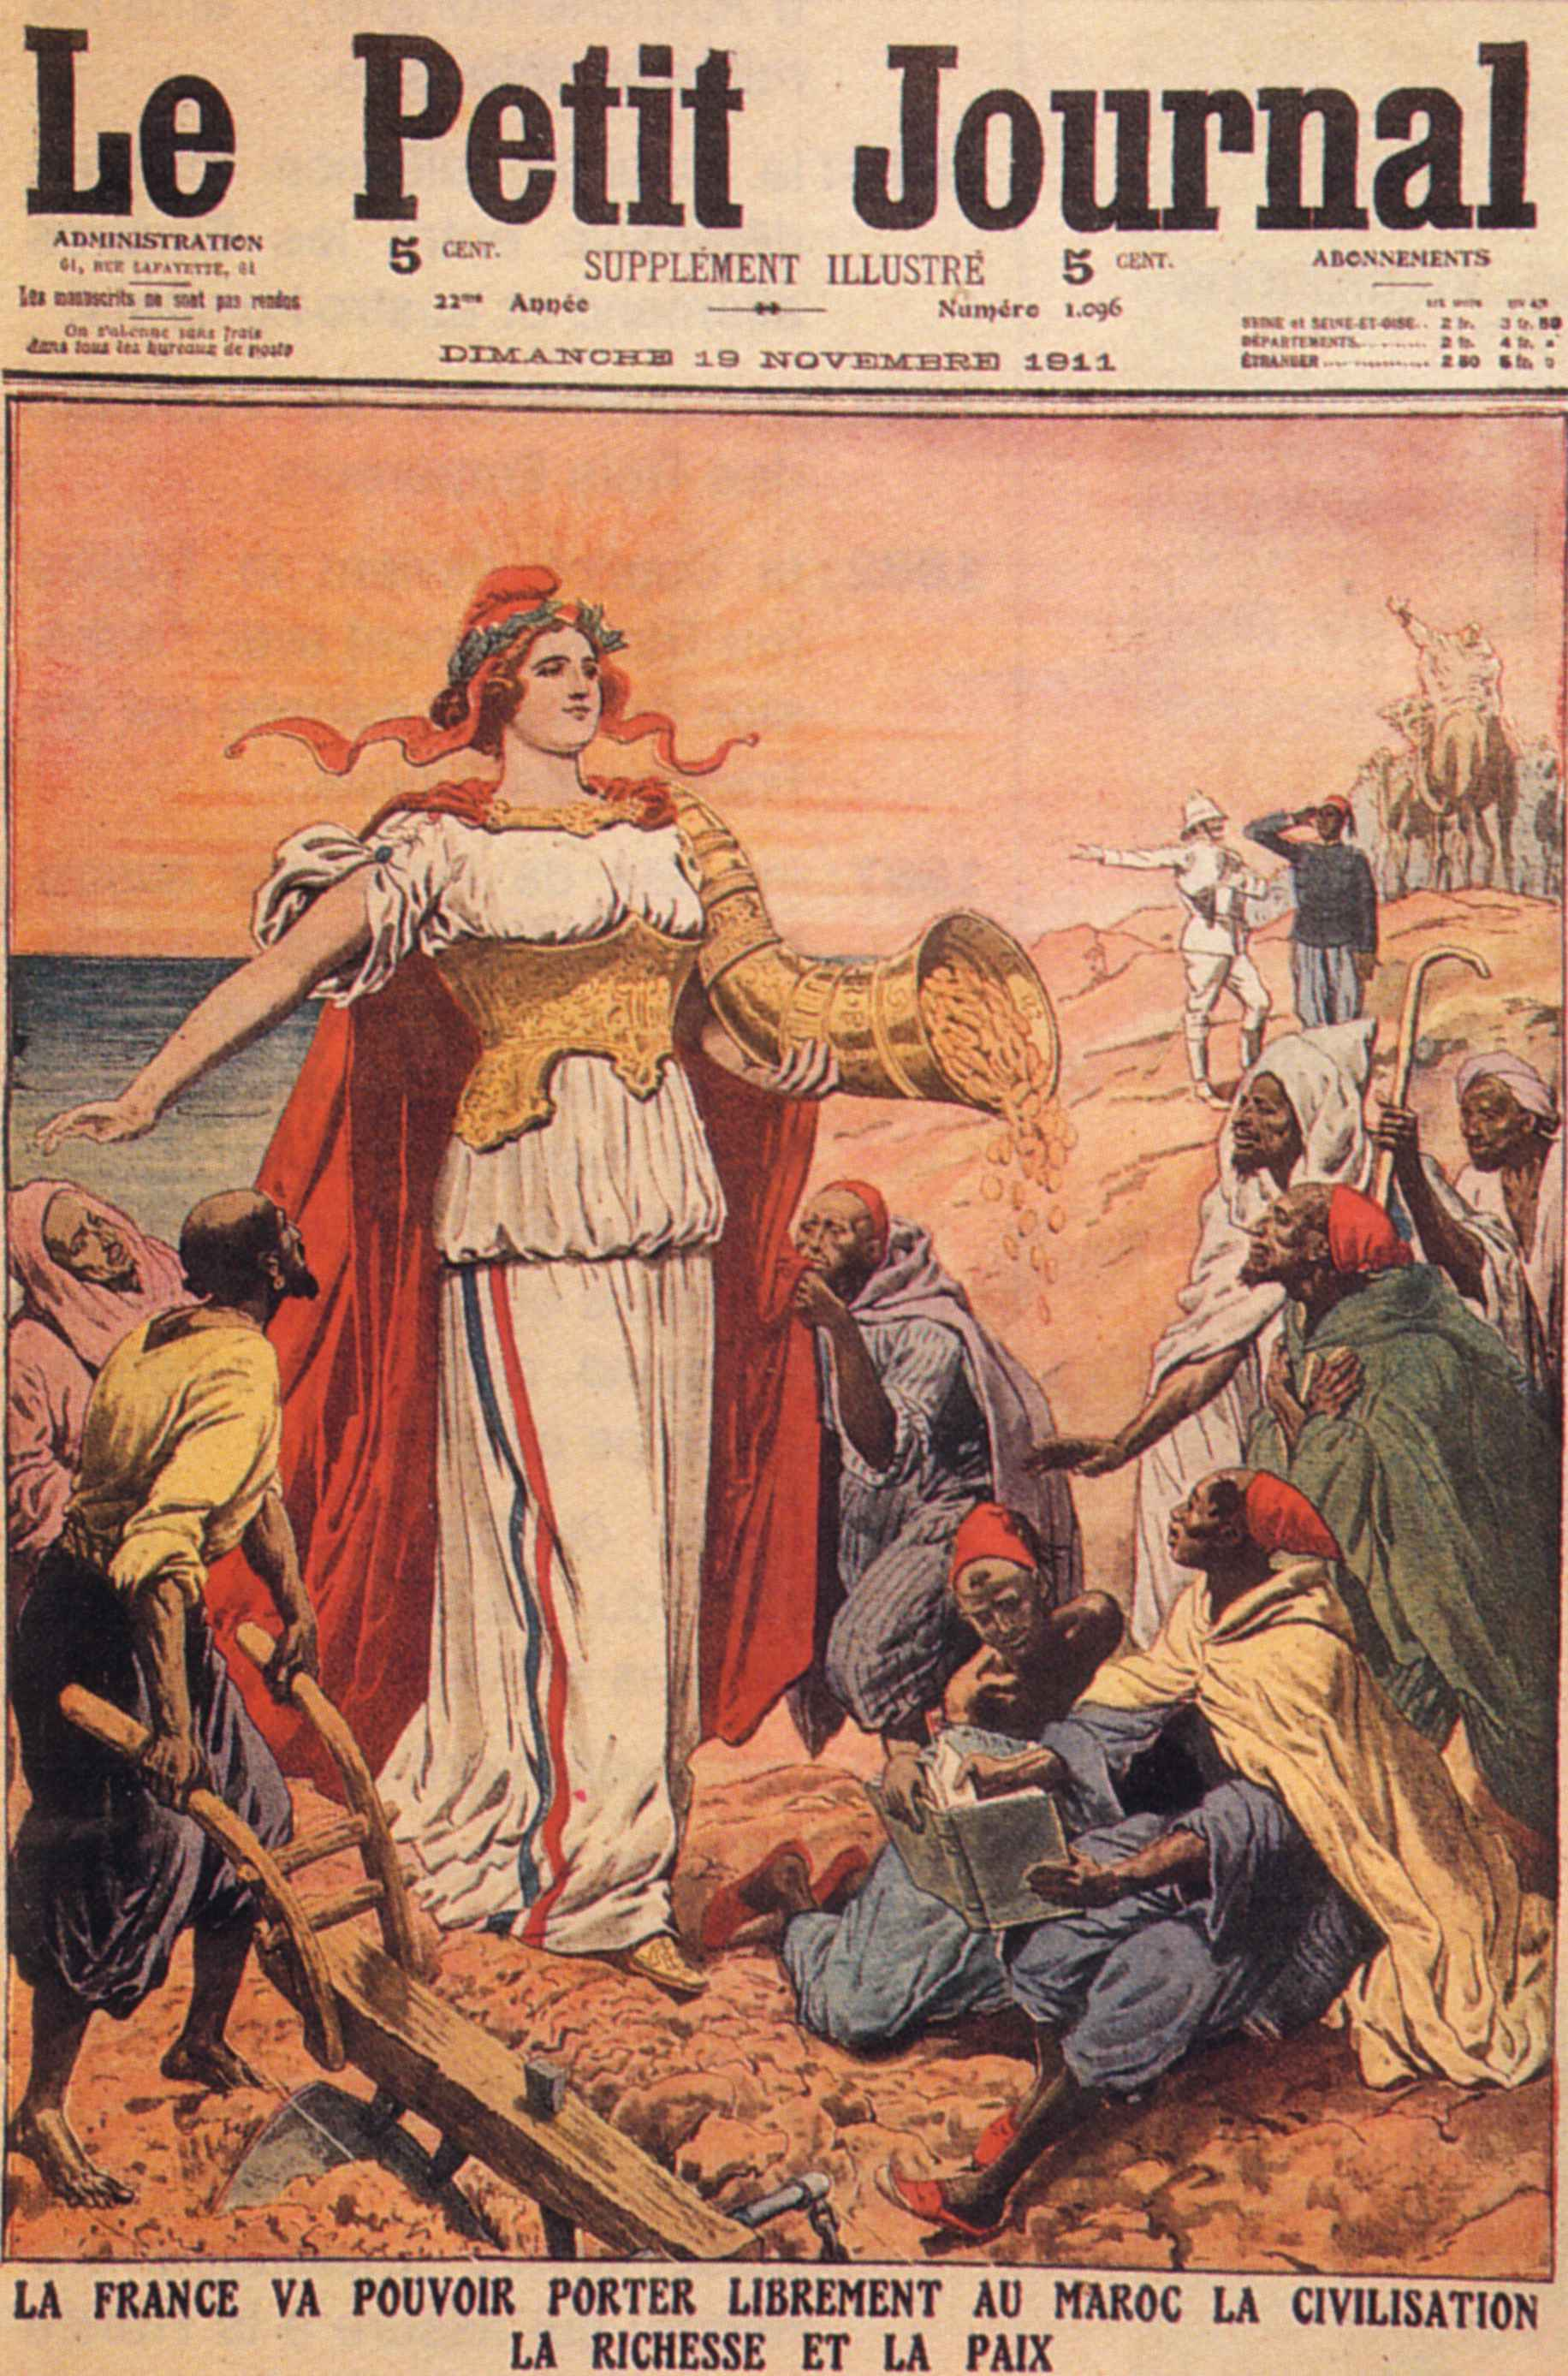 An infamous journal cover celebrates the French protectorate of Morocco as a civilization-building project